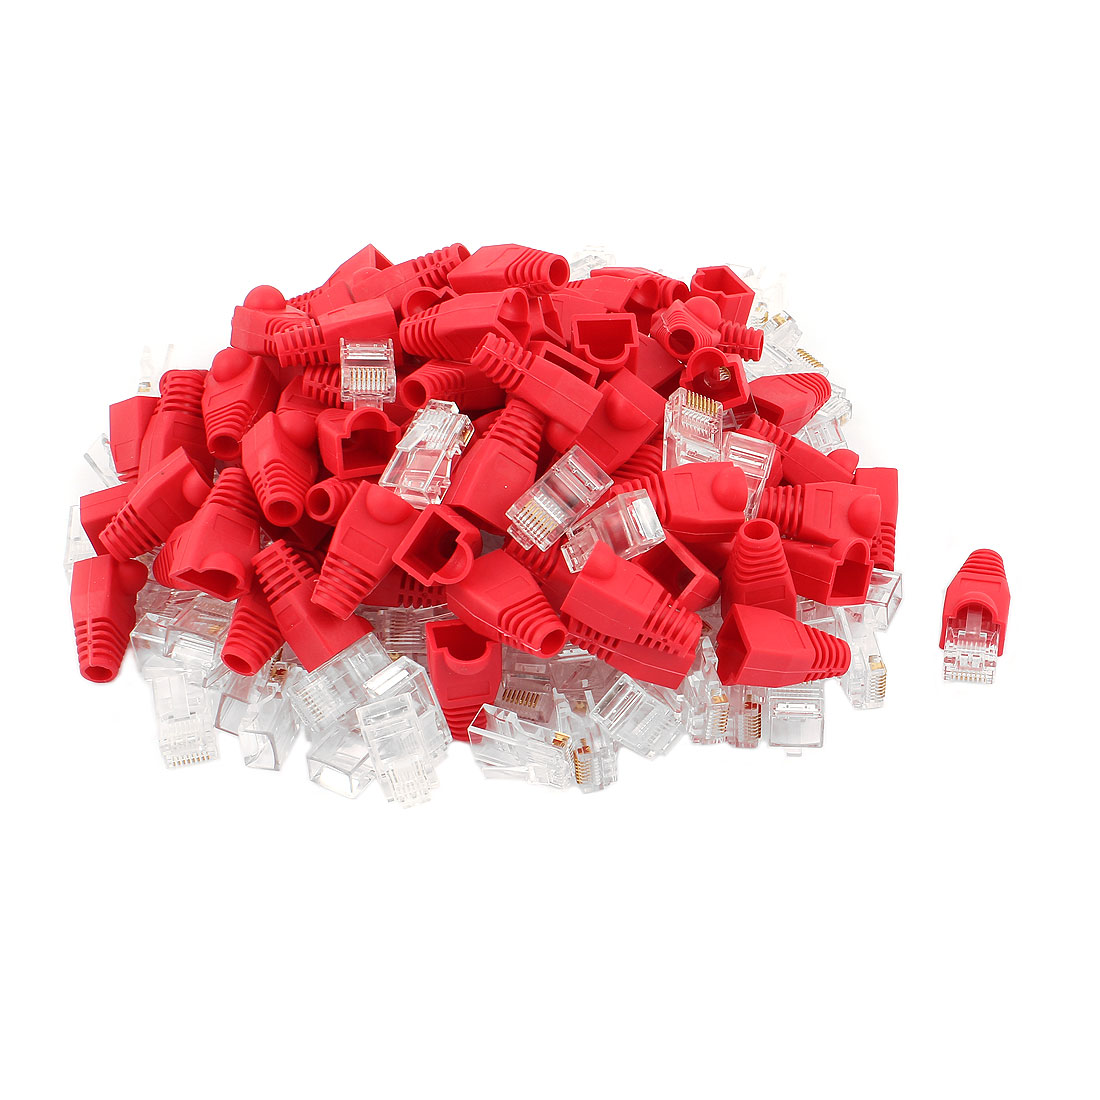 100pcs 8P8C Cat6 Patch RJ45 Head Shielded Modular Jack Plug End Adapter w Boot Protector Red